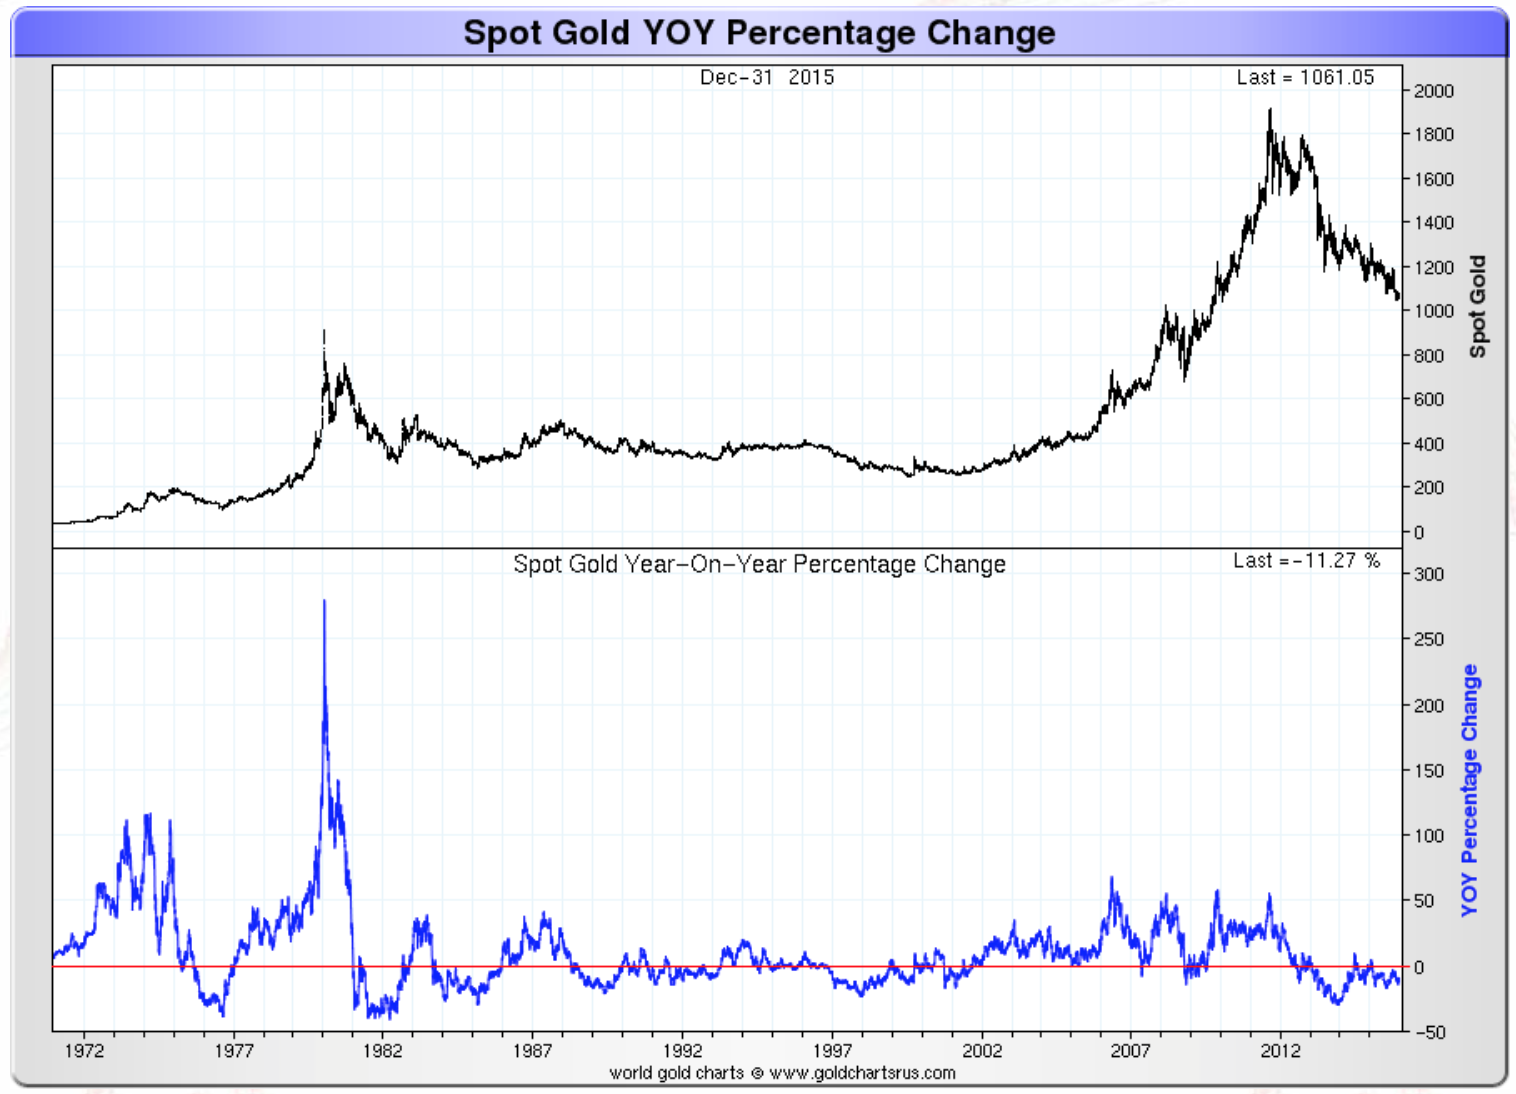 Spot gold YOY percentage change